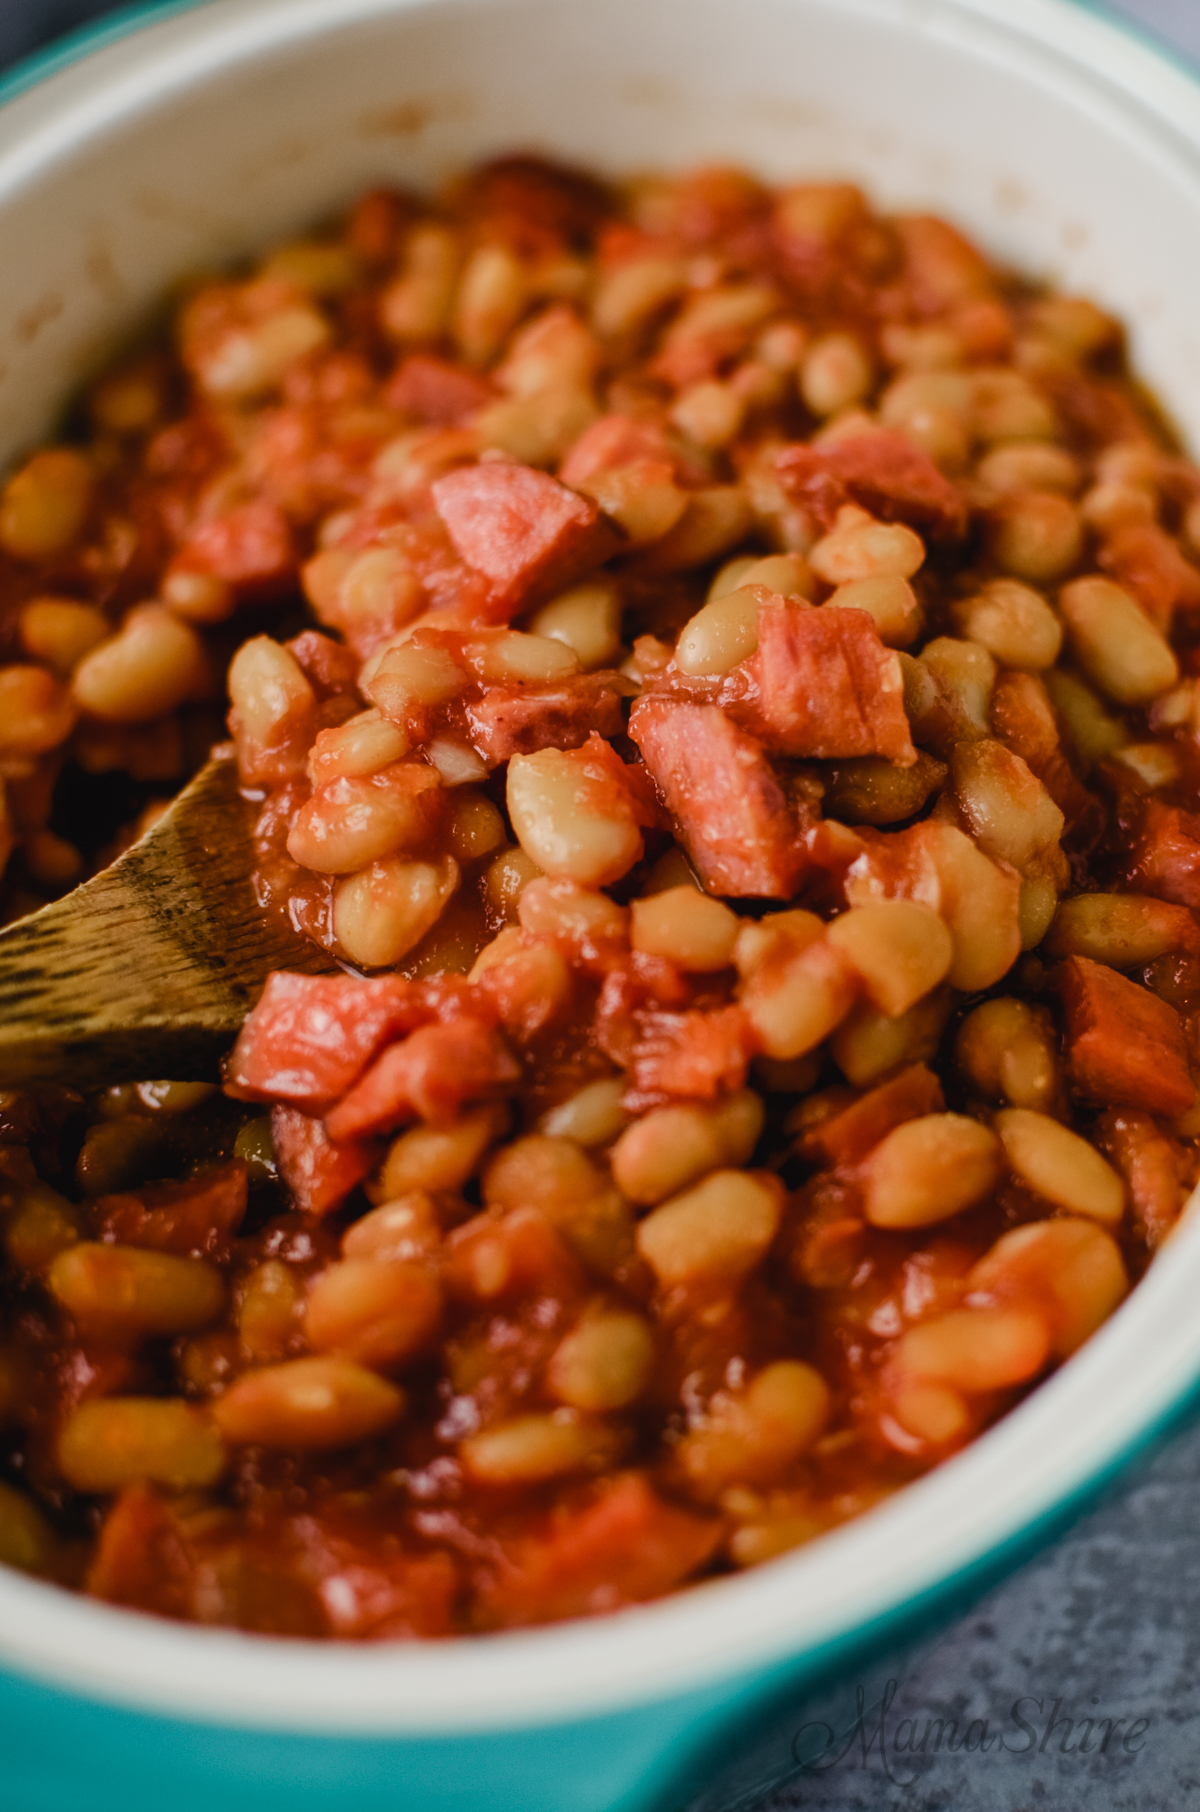 Baked beans with smoked sausage and brown sugar.